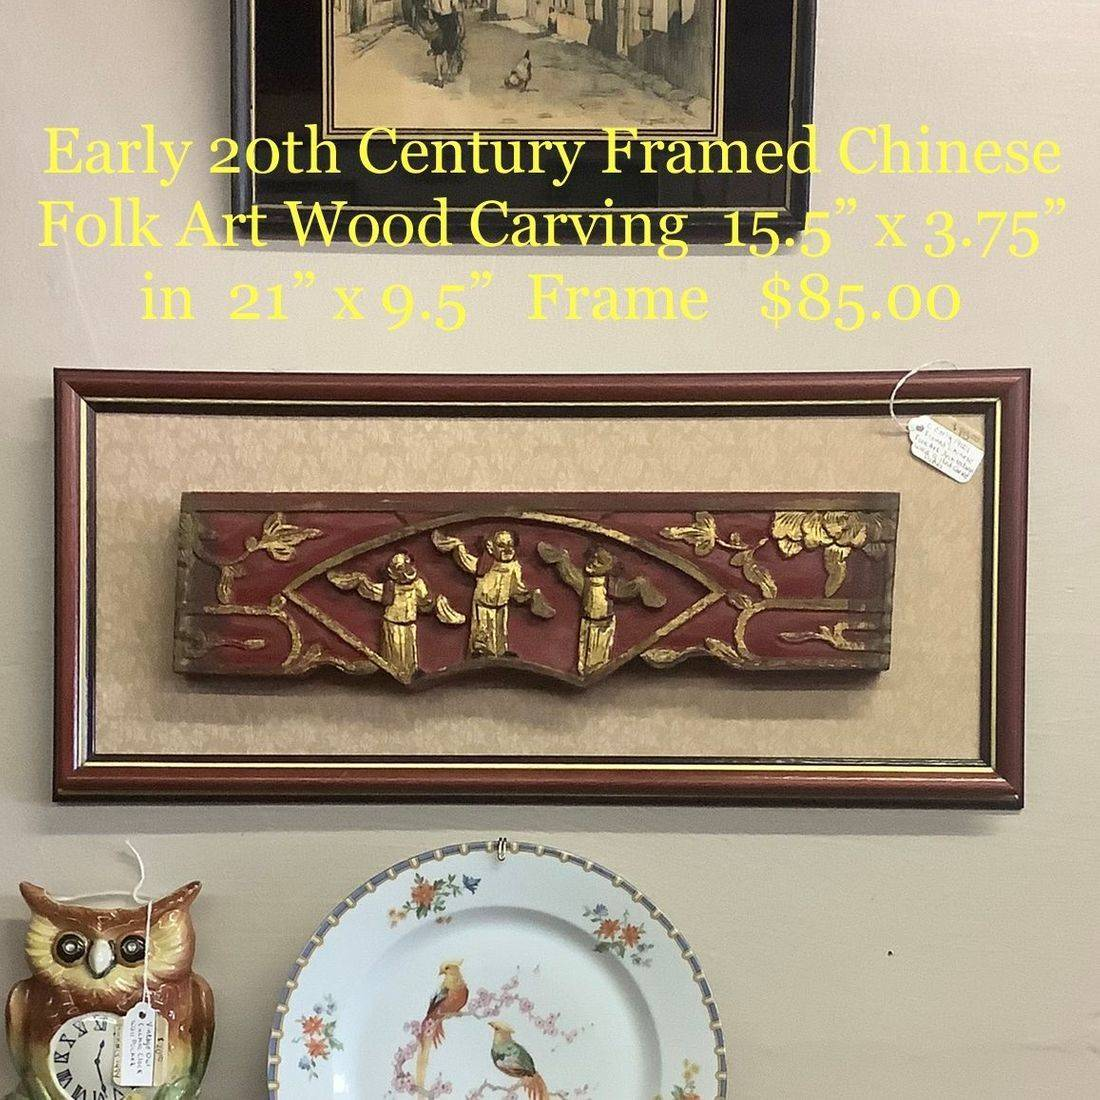 Early 20th Century Framed Chinese Folk Art Wood Carving   $85.00